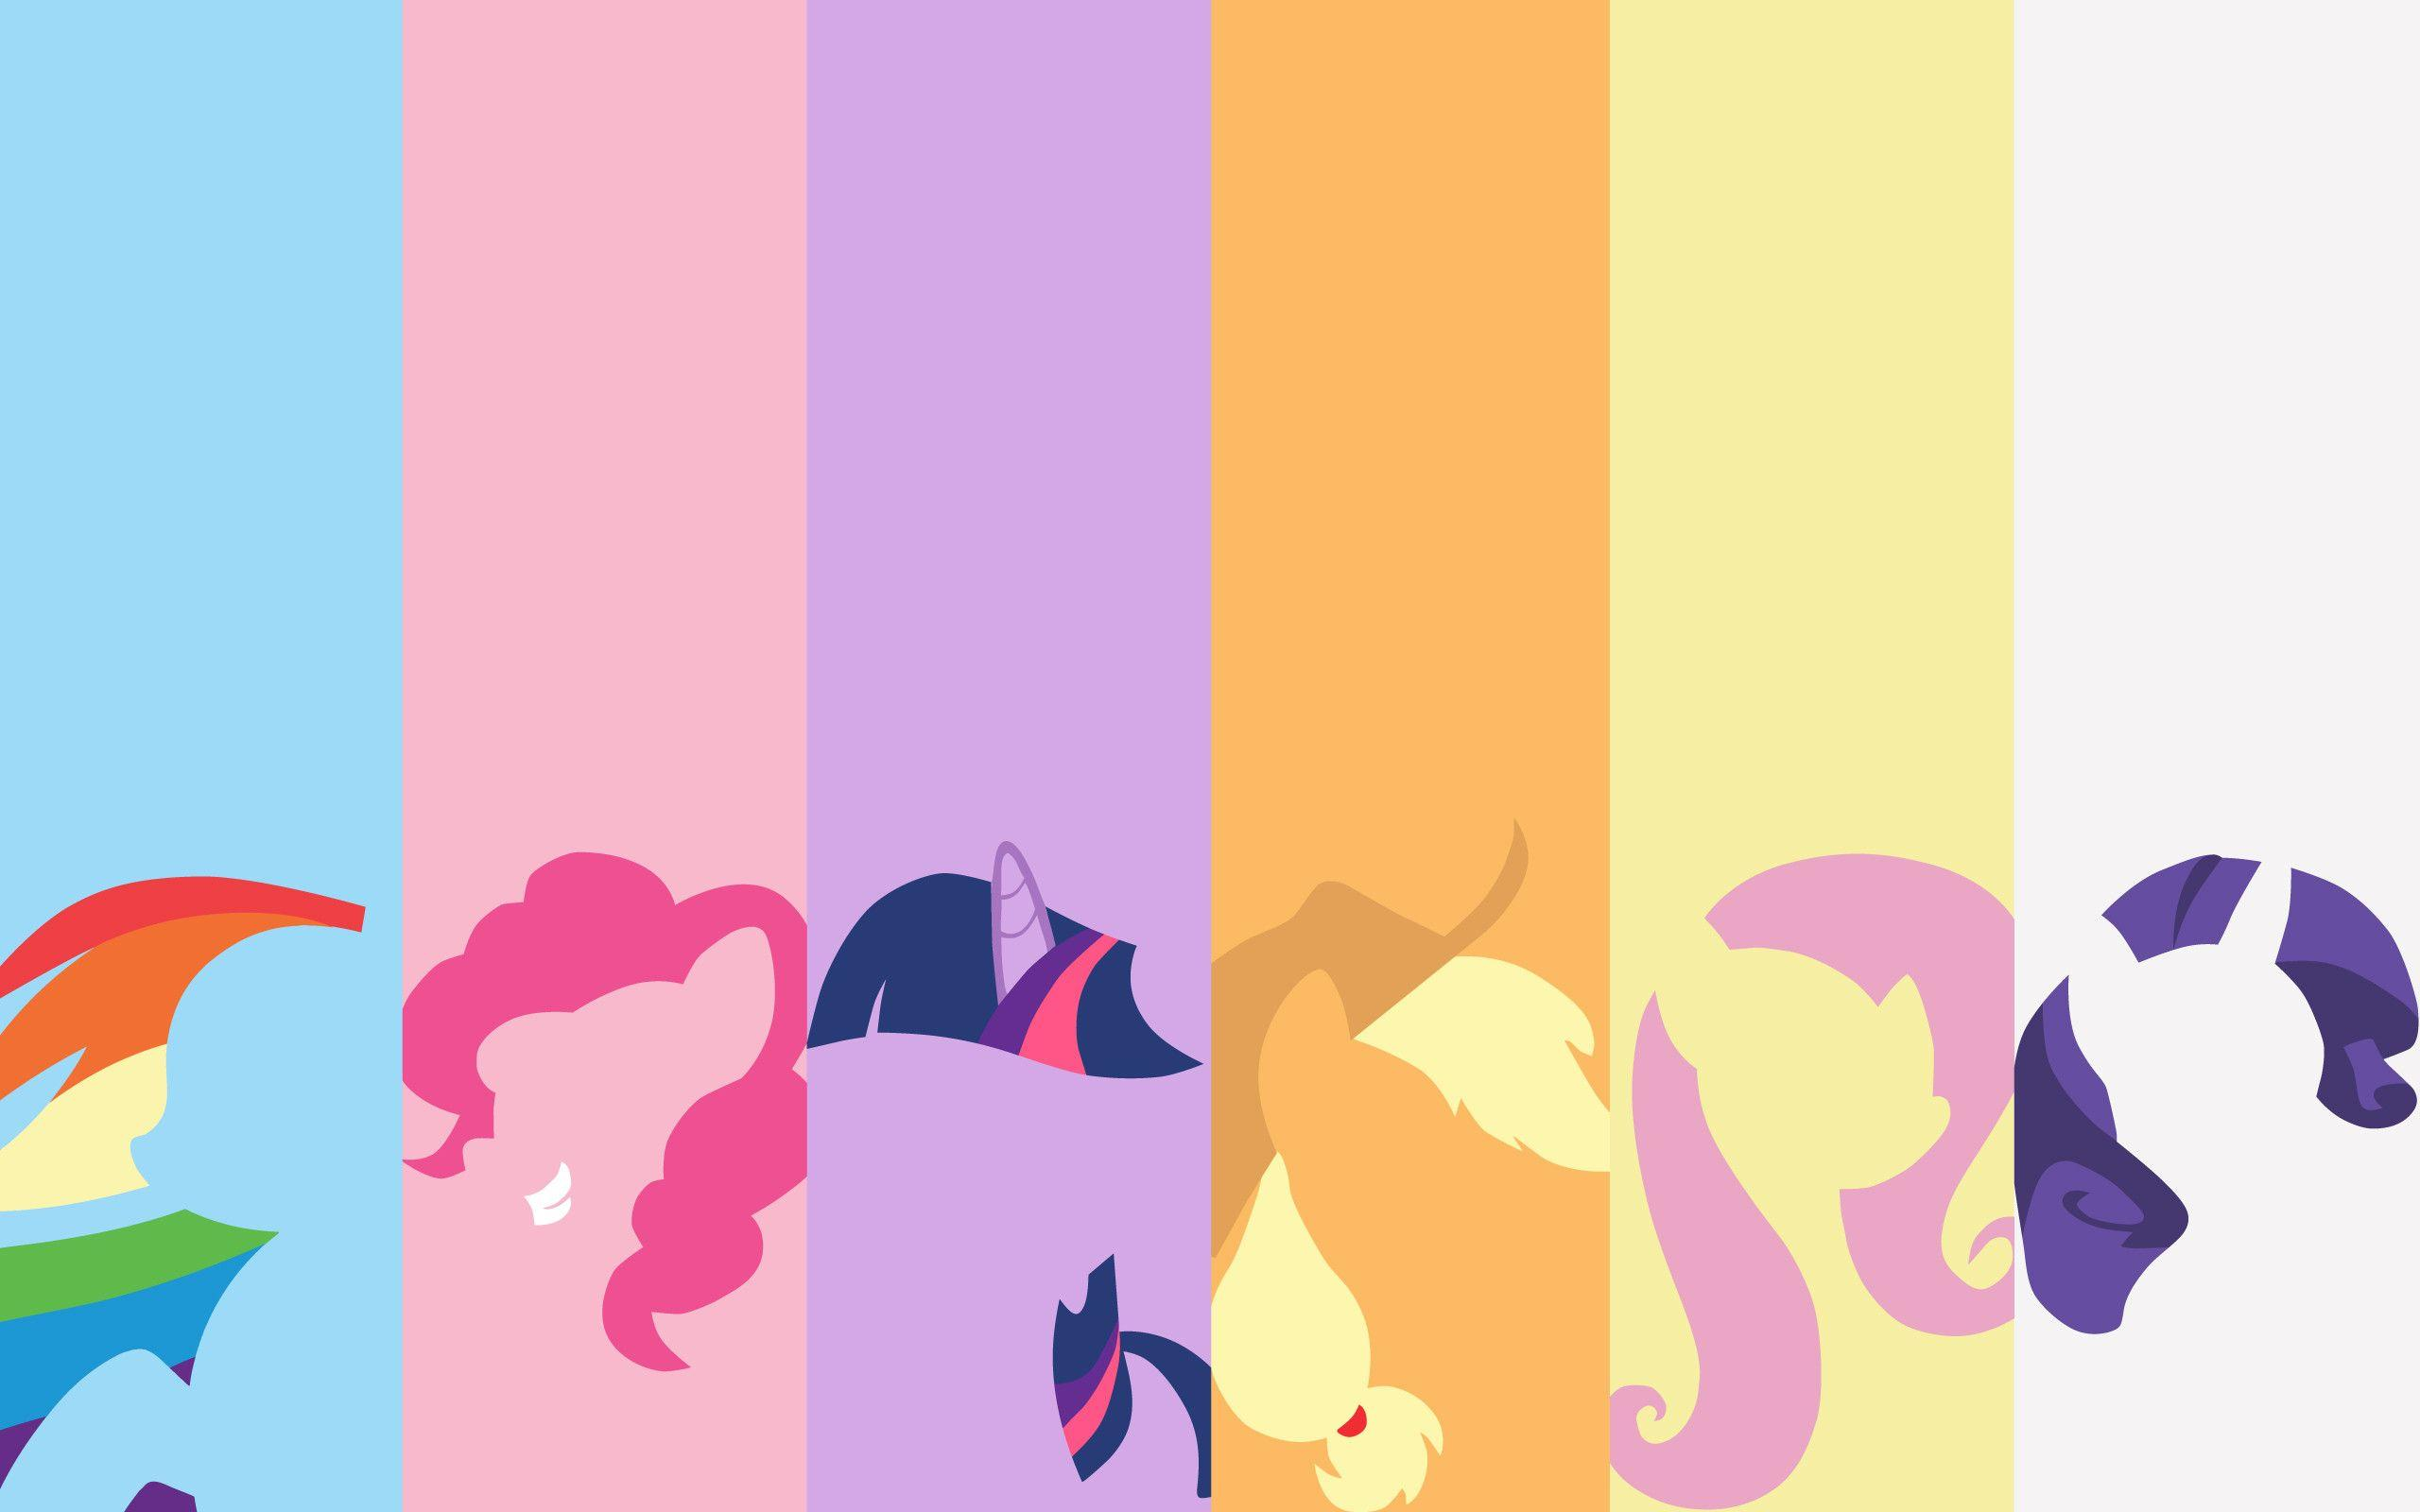 mlp background pony wallpapers - photo #1